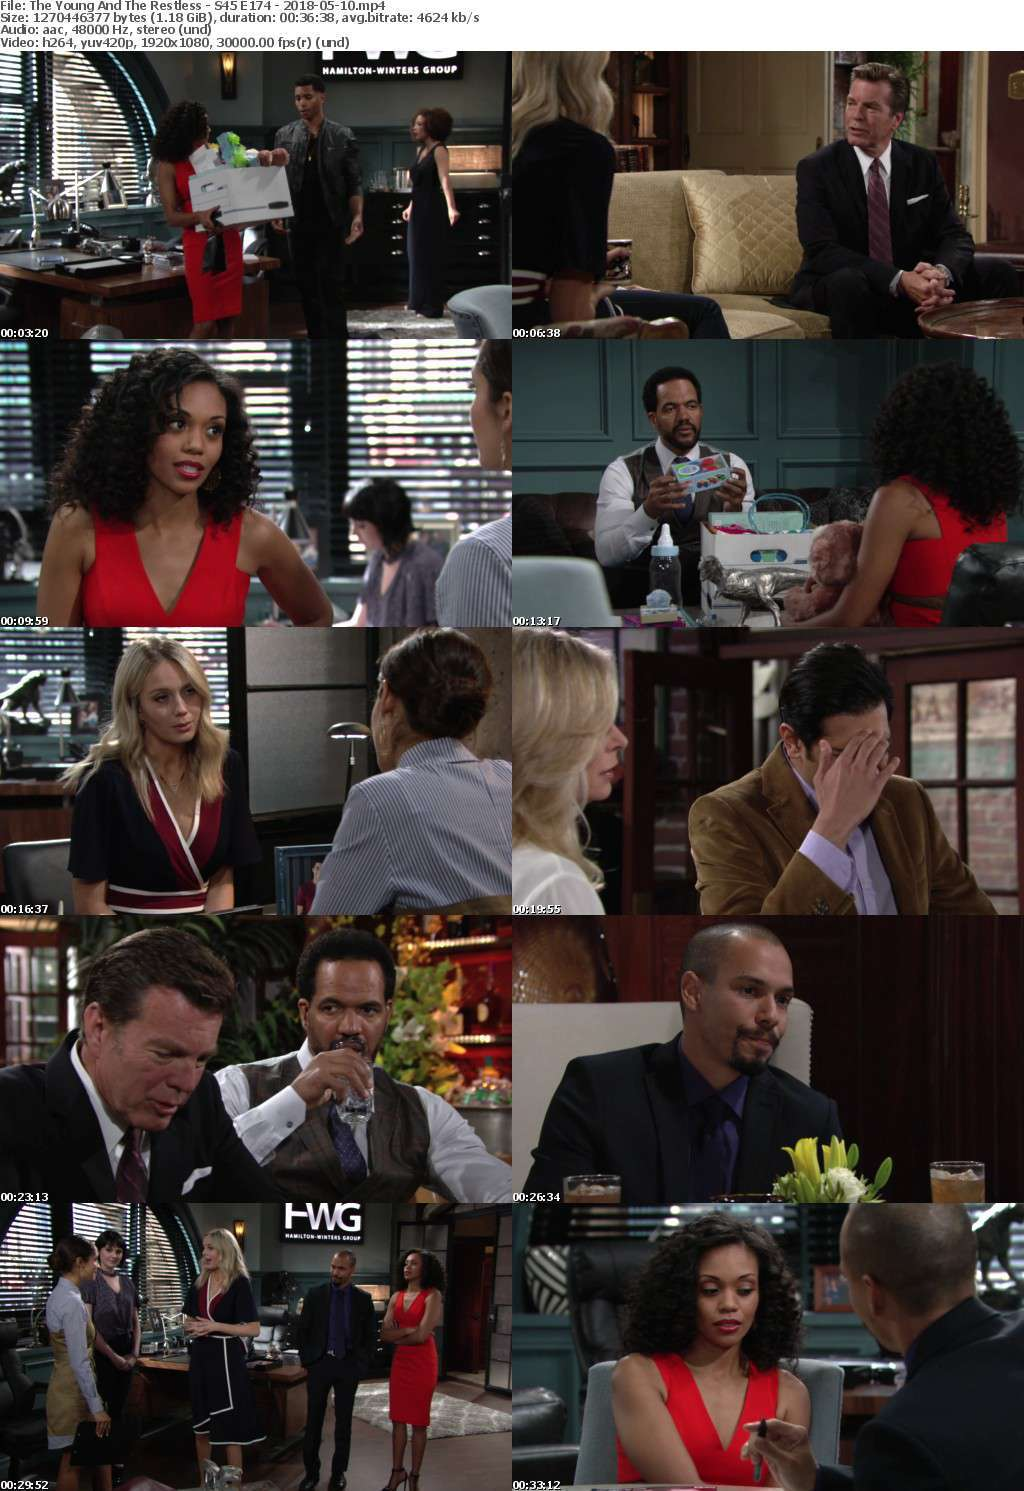 The Young And The Restless - S45 E174 - 2018-05-10